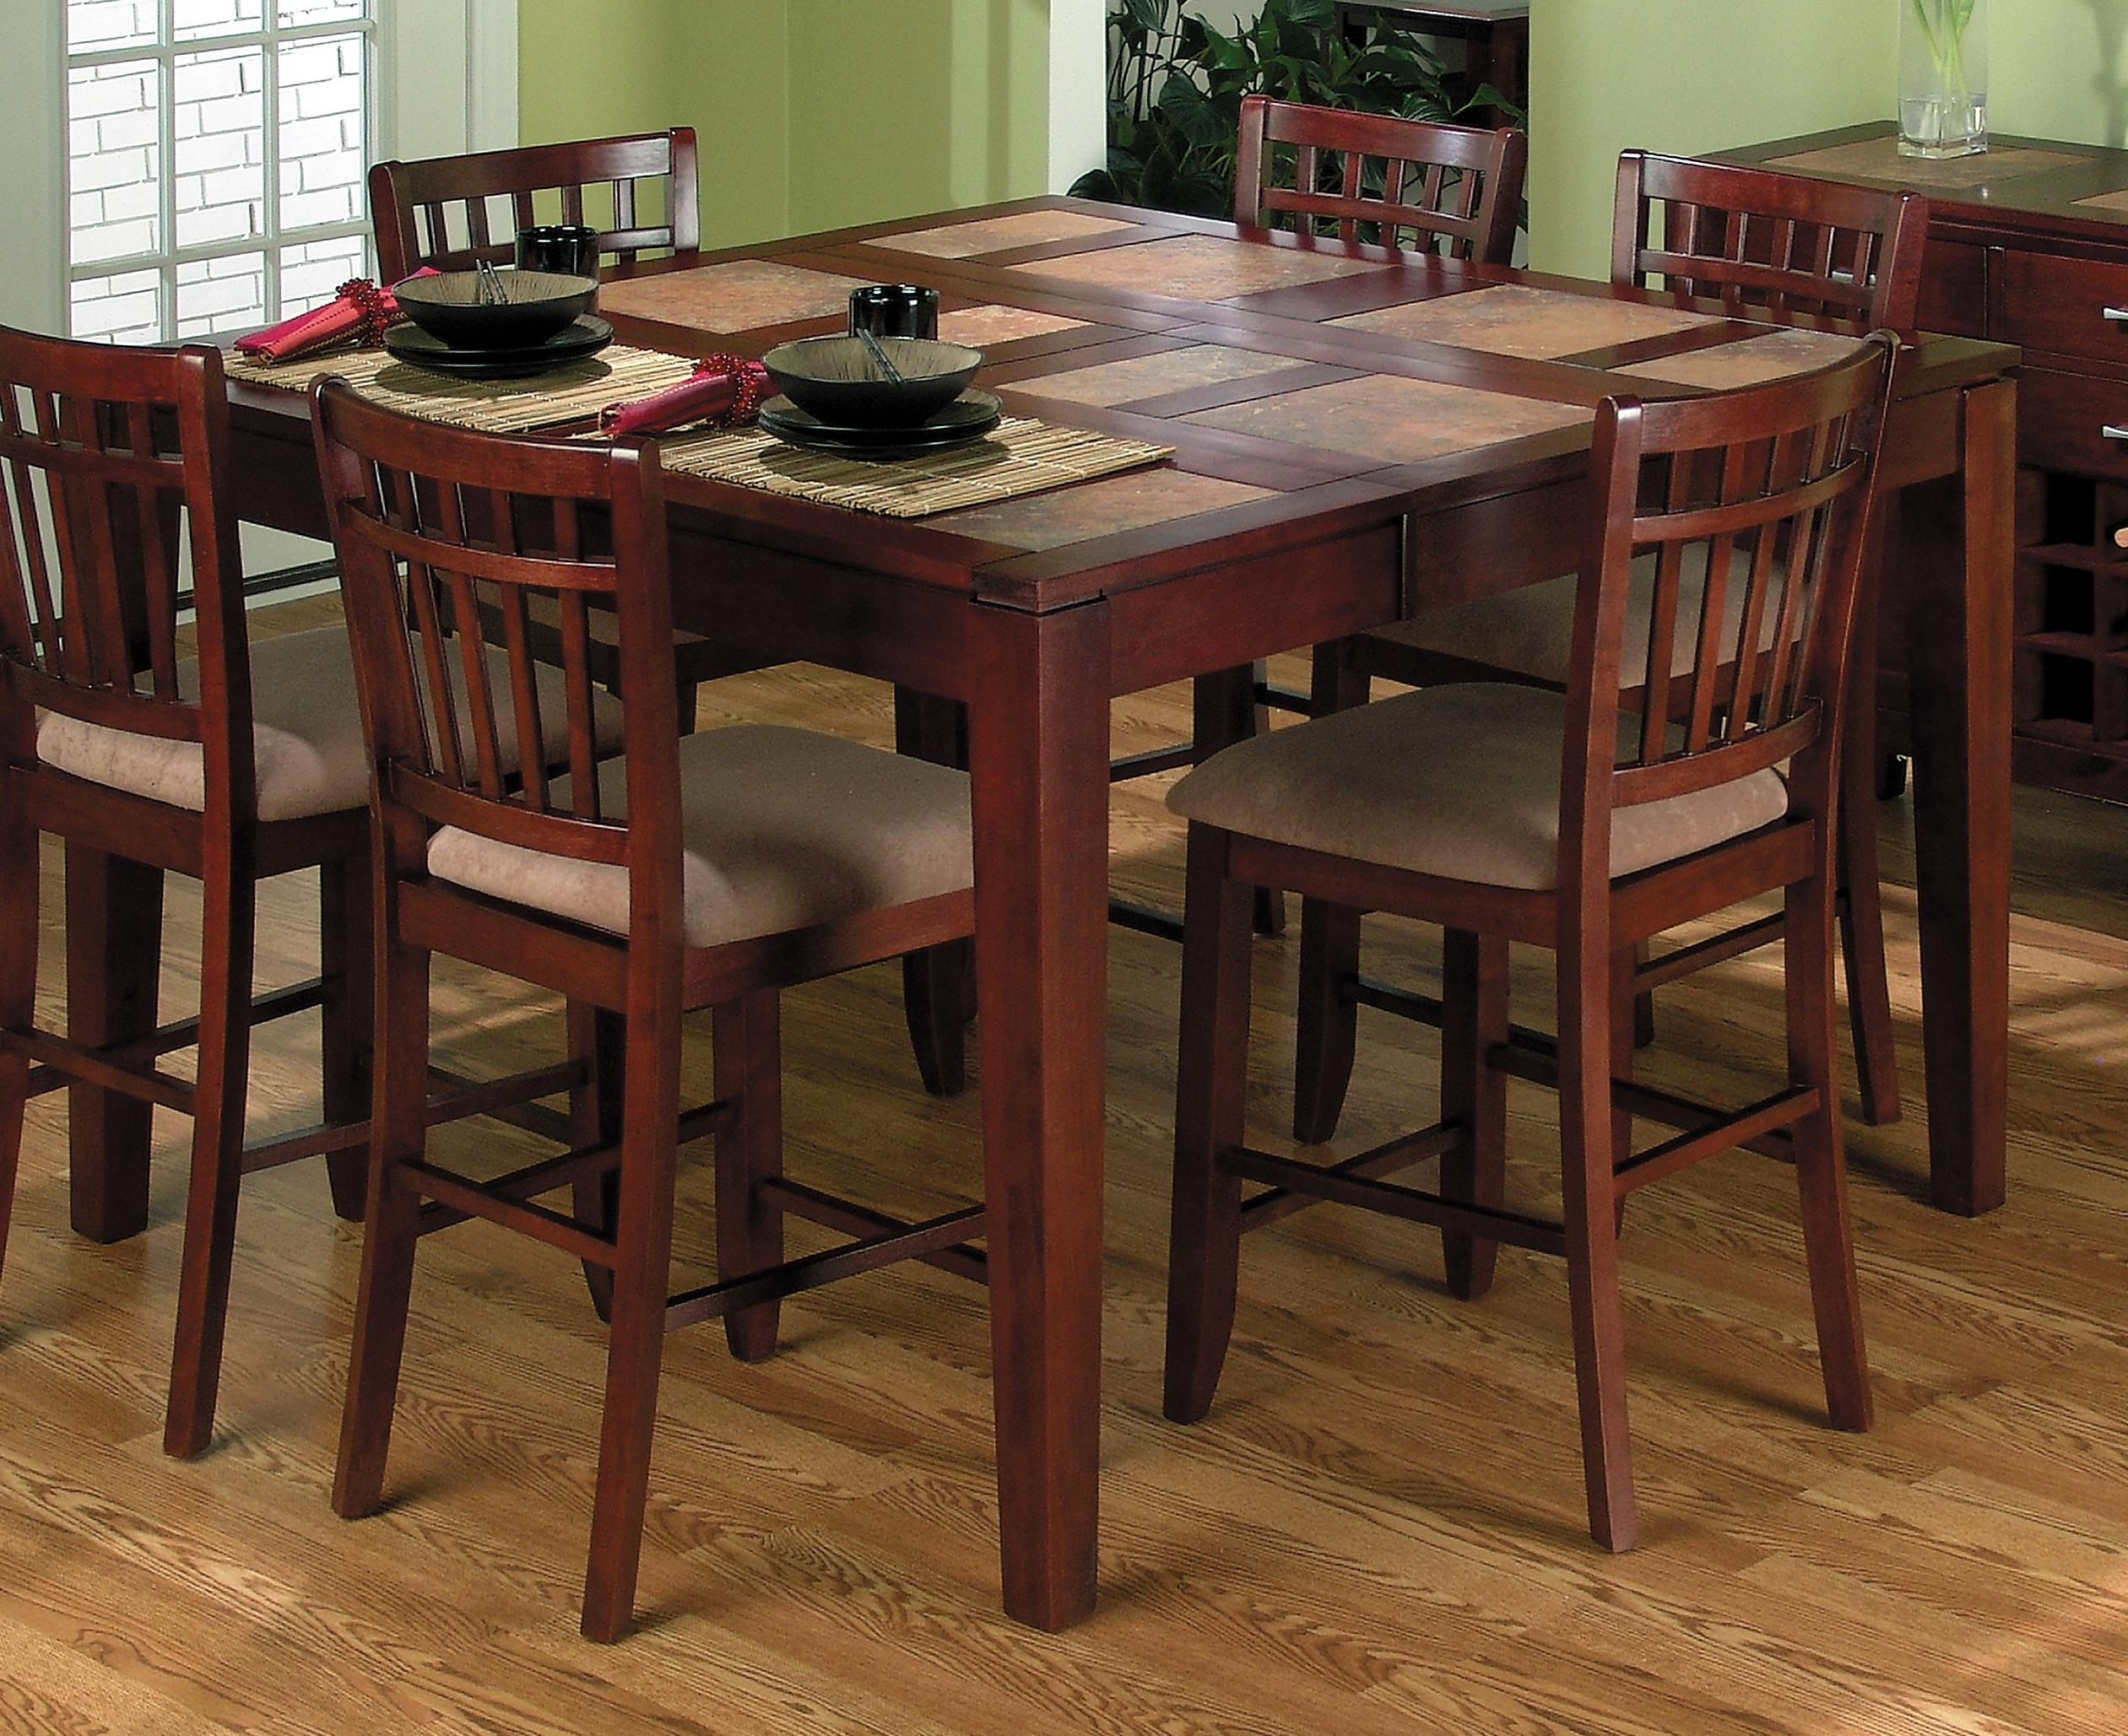 High Top Kitchen Table Sets HomesFeed : Hight Kitchen Table Set Wooden WIth Chairs In Room With Hardwood Floor from homesfeed.com size 2521 x 2057 jpeg 709kB